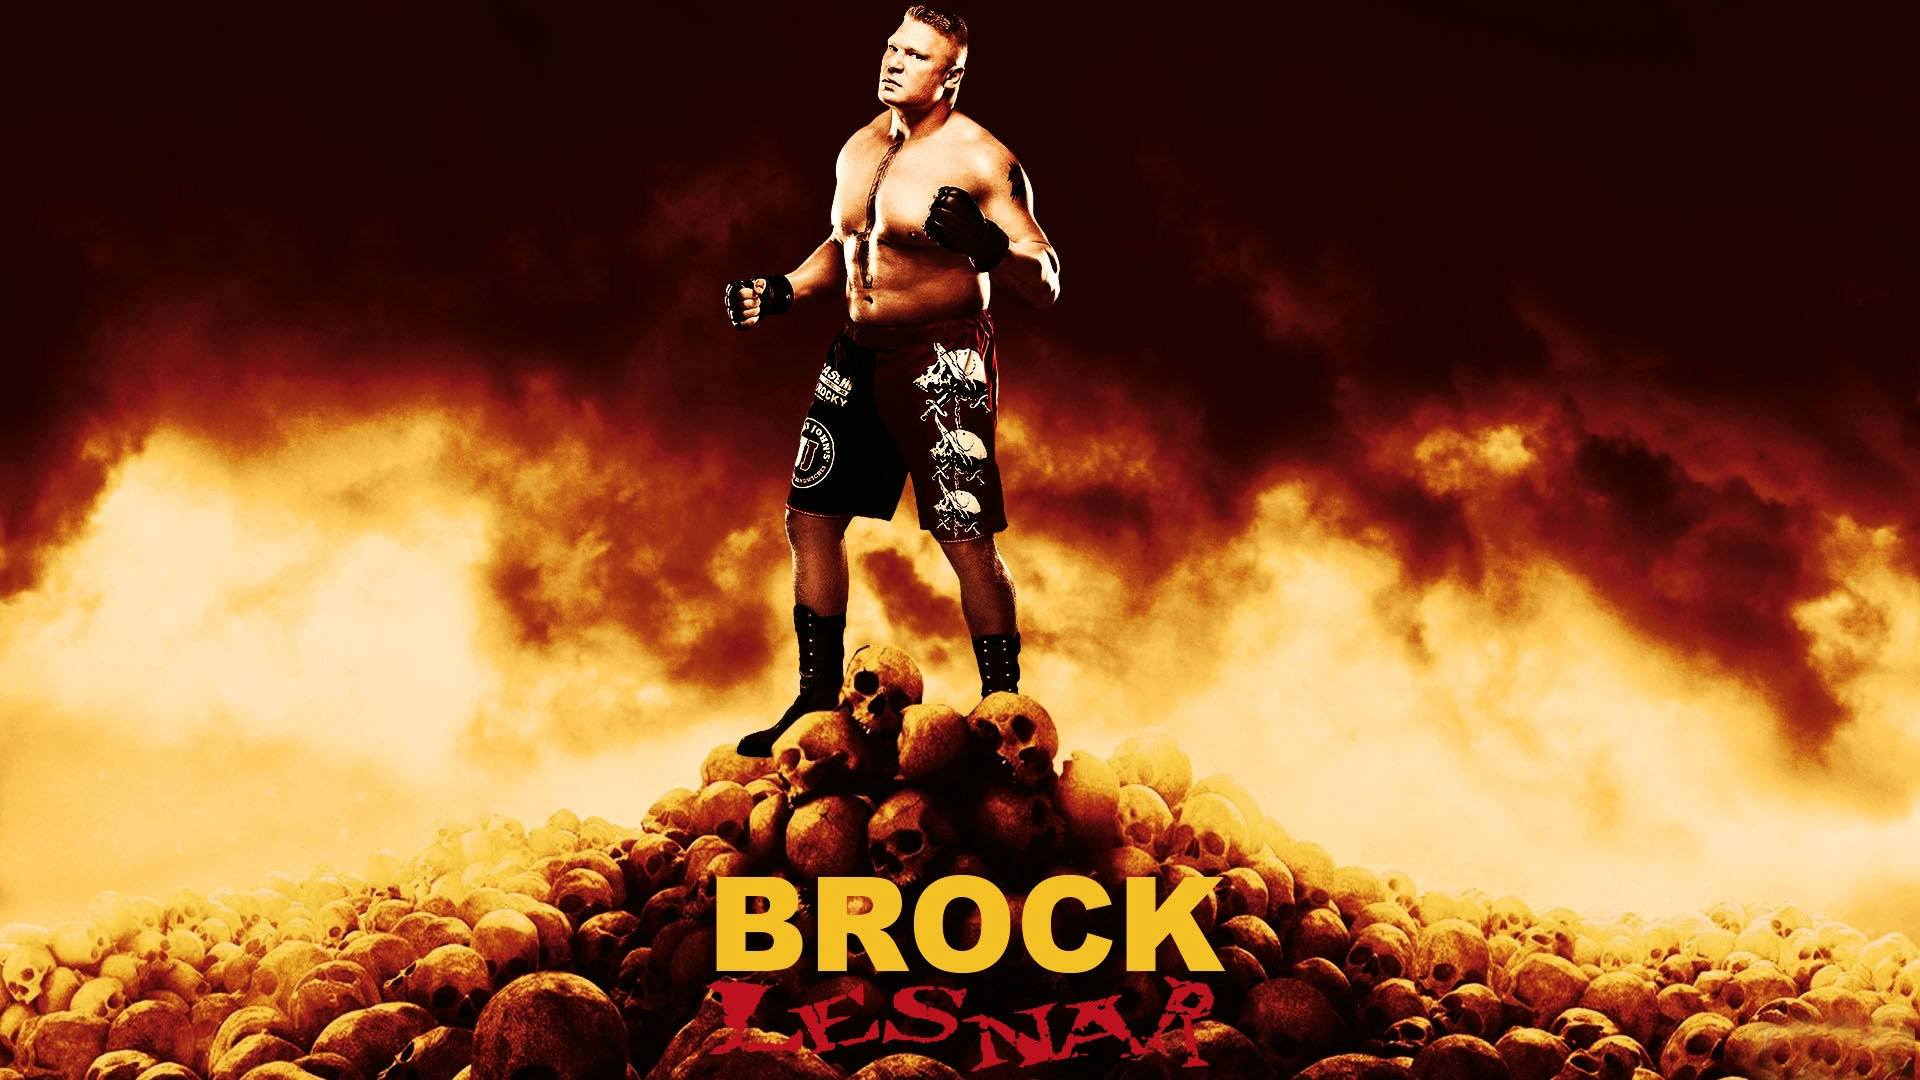 Wwe Brock Lesnar Widescreen Hd Wallpaper